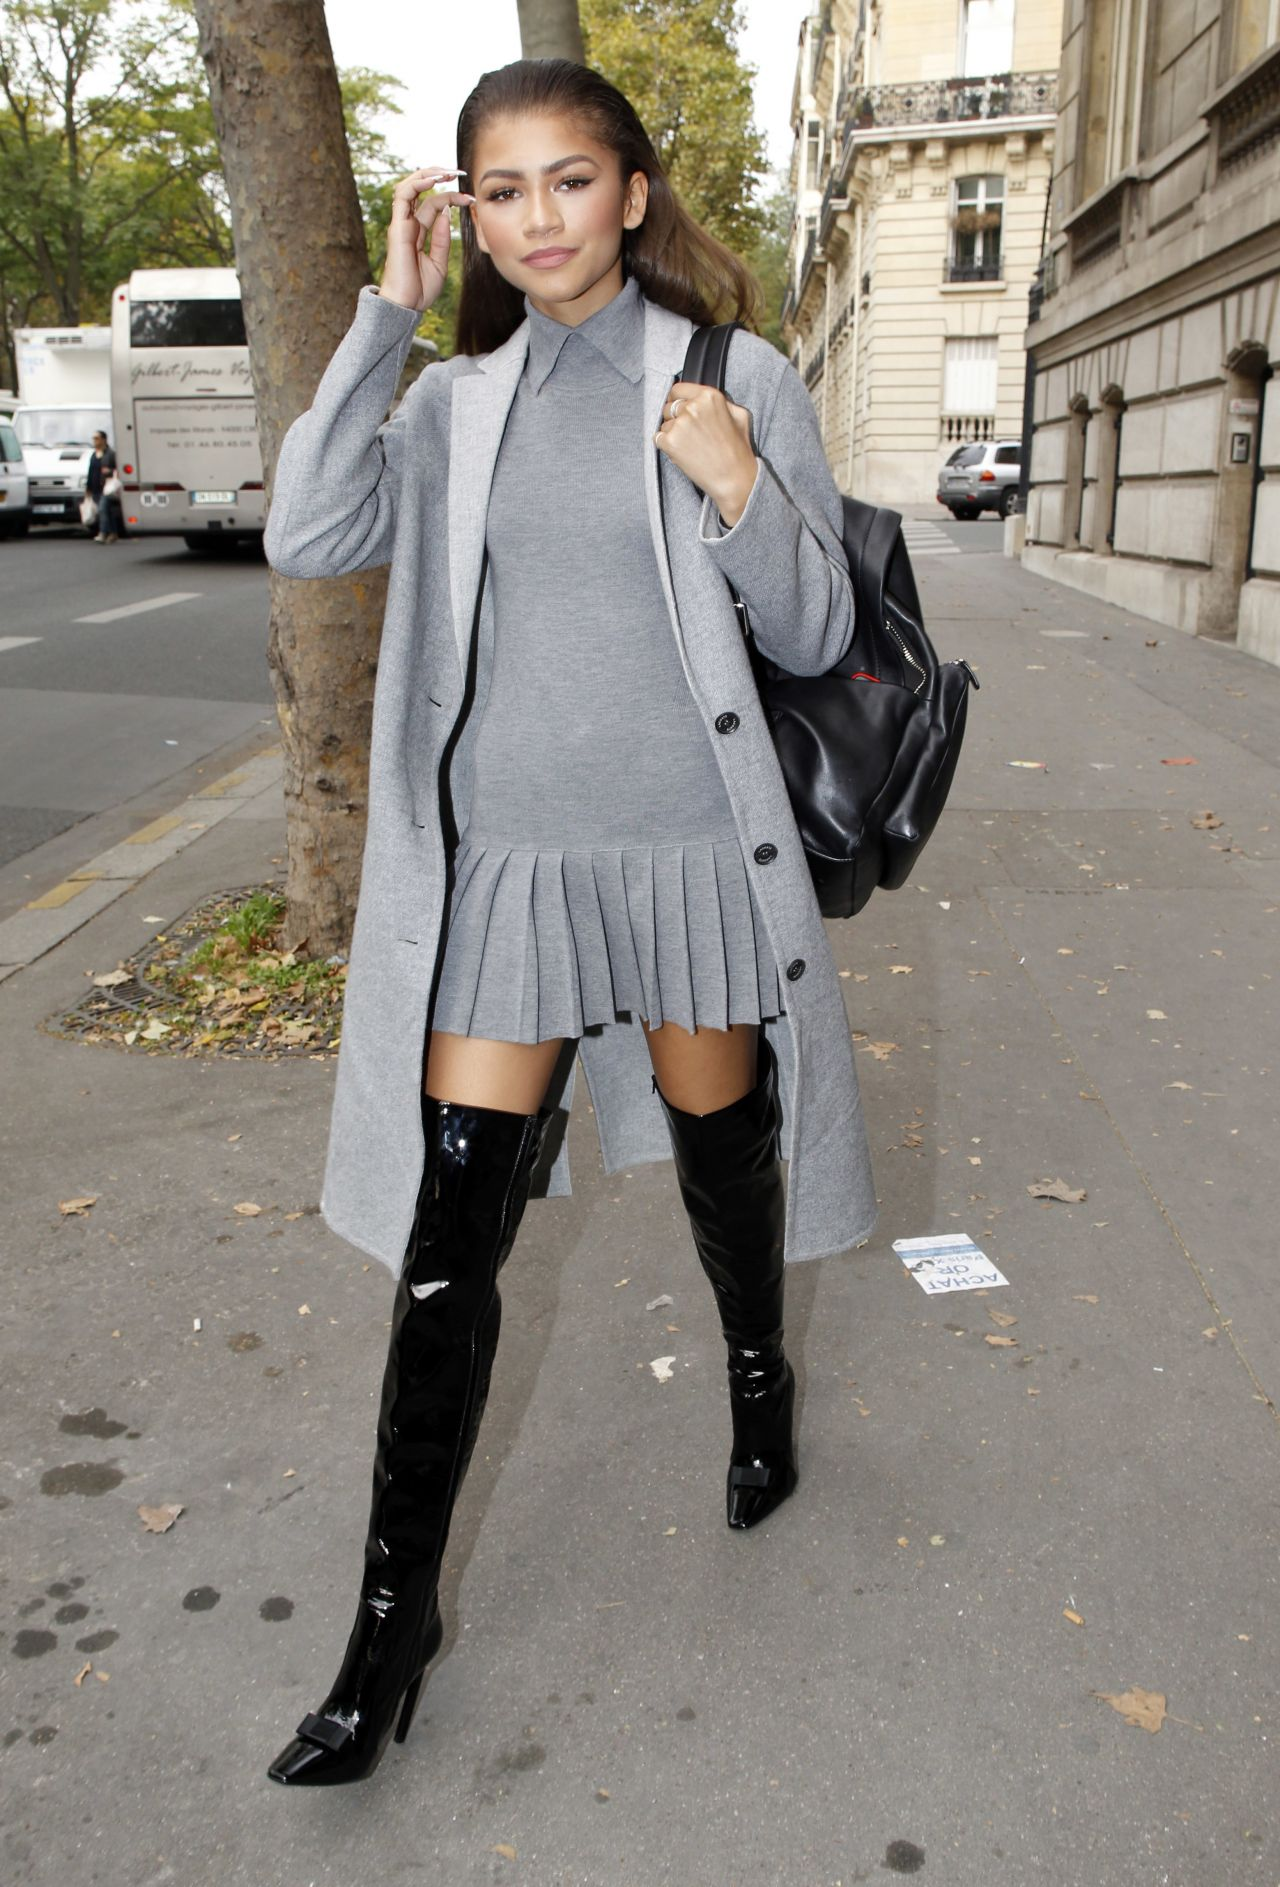 zendaya-street-fashion-out-in-paris-october-2015_10